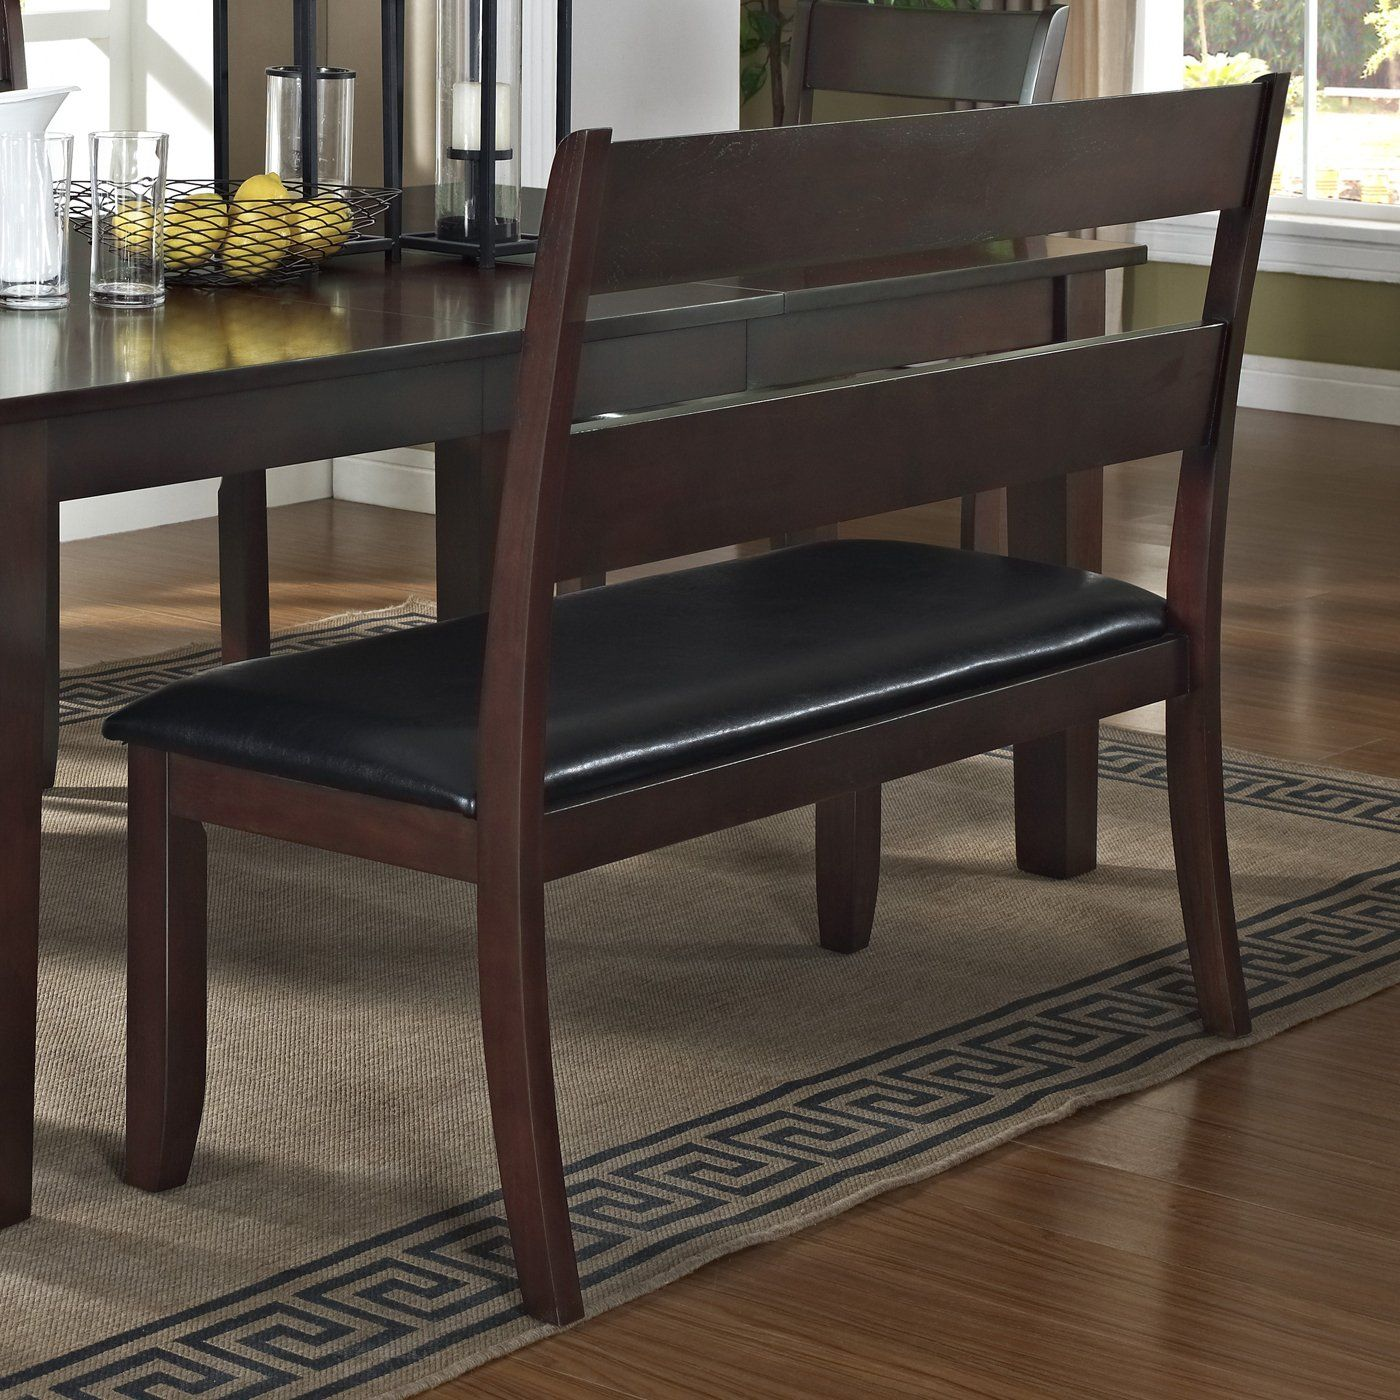 dining table bench with backrest. urban styles furniture 2814 skyline bench with backrest at atg stores dining table e